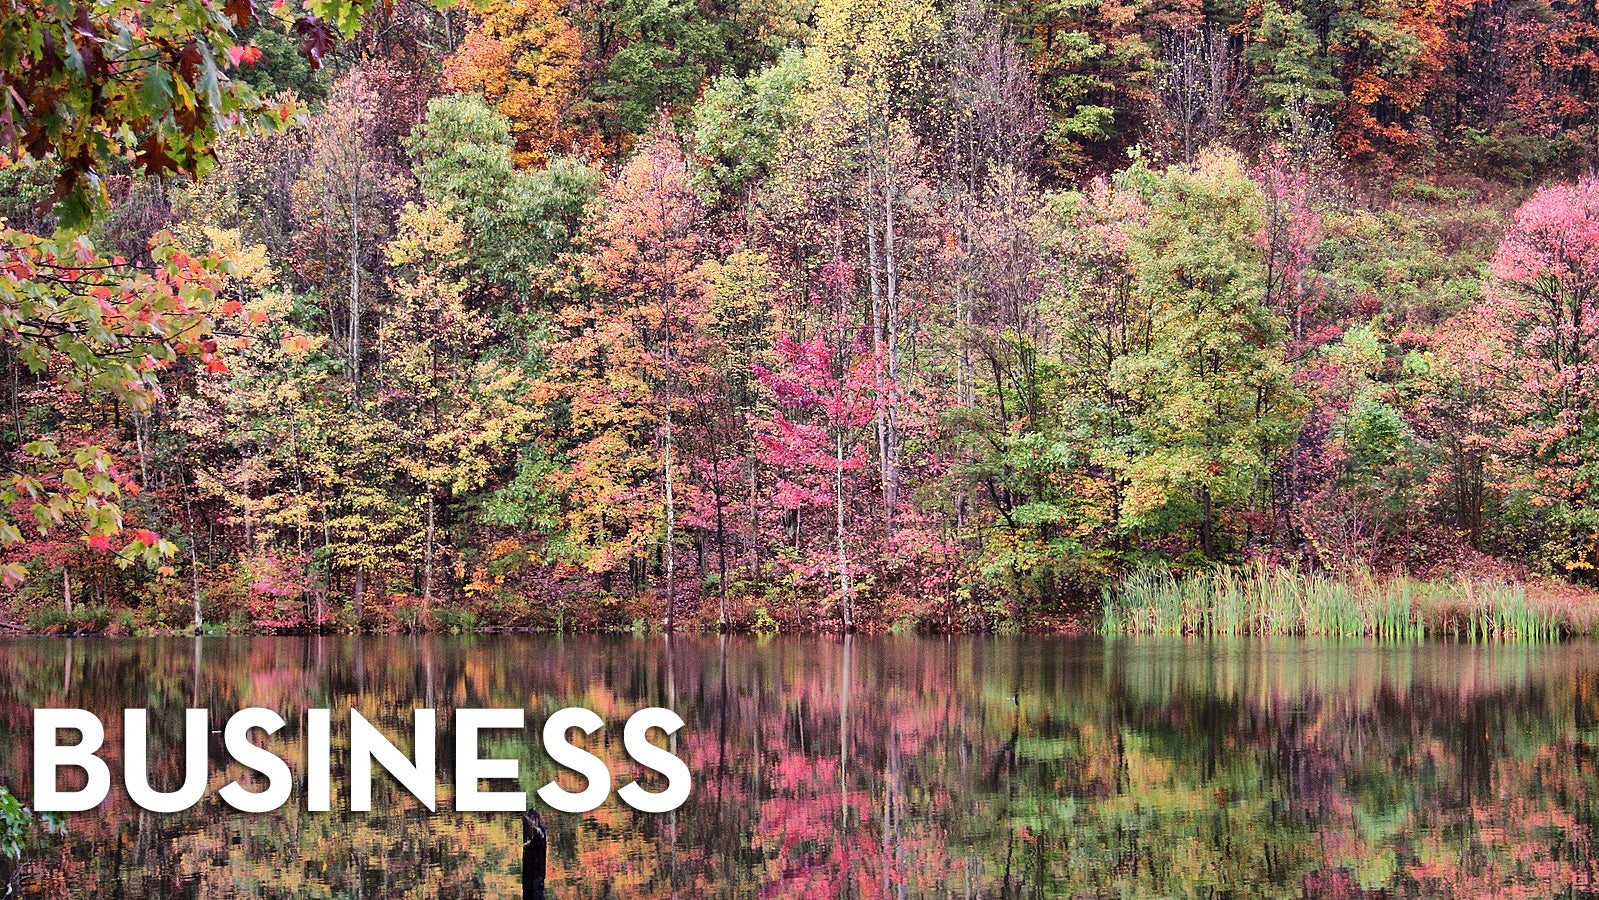 This Week In The Business: The Changing Season